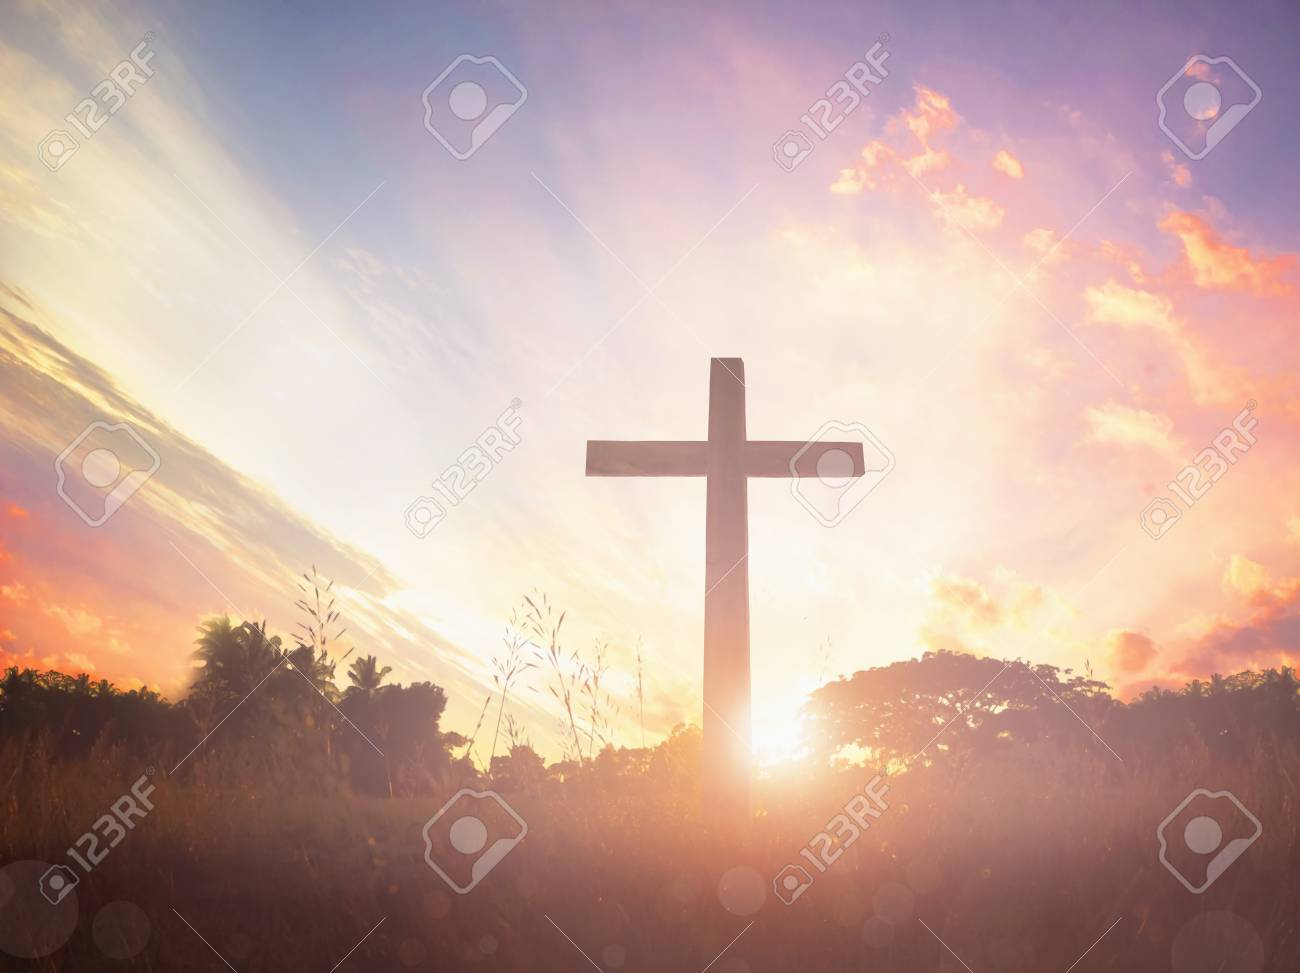 Free download Jesus Christ Mercy At Cross On Mountain Sunset Background  Stock [1300x973] for your Desktop, Mobile & Tablet | Explore 33+ Jesu  Background | Jesu Background,